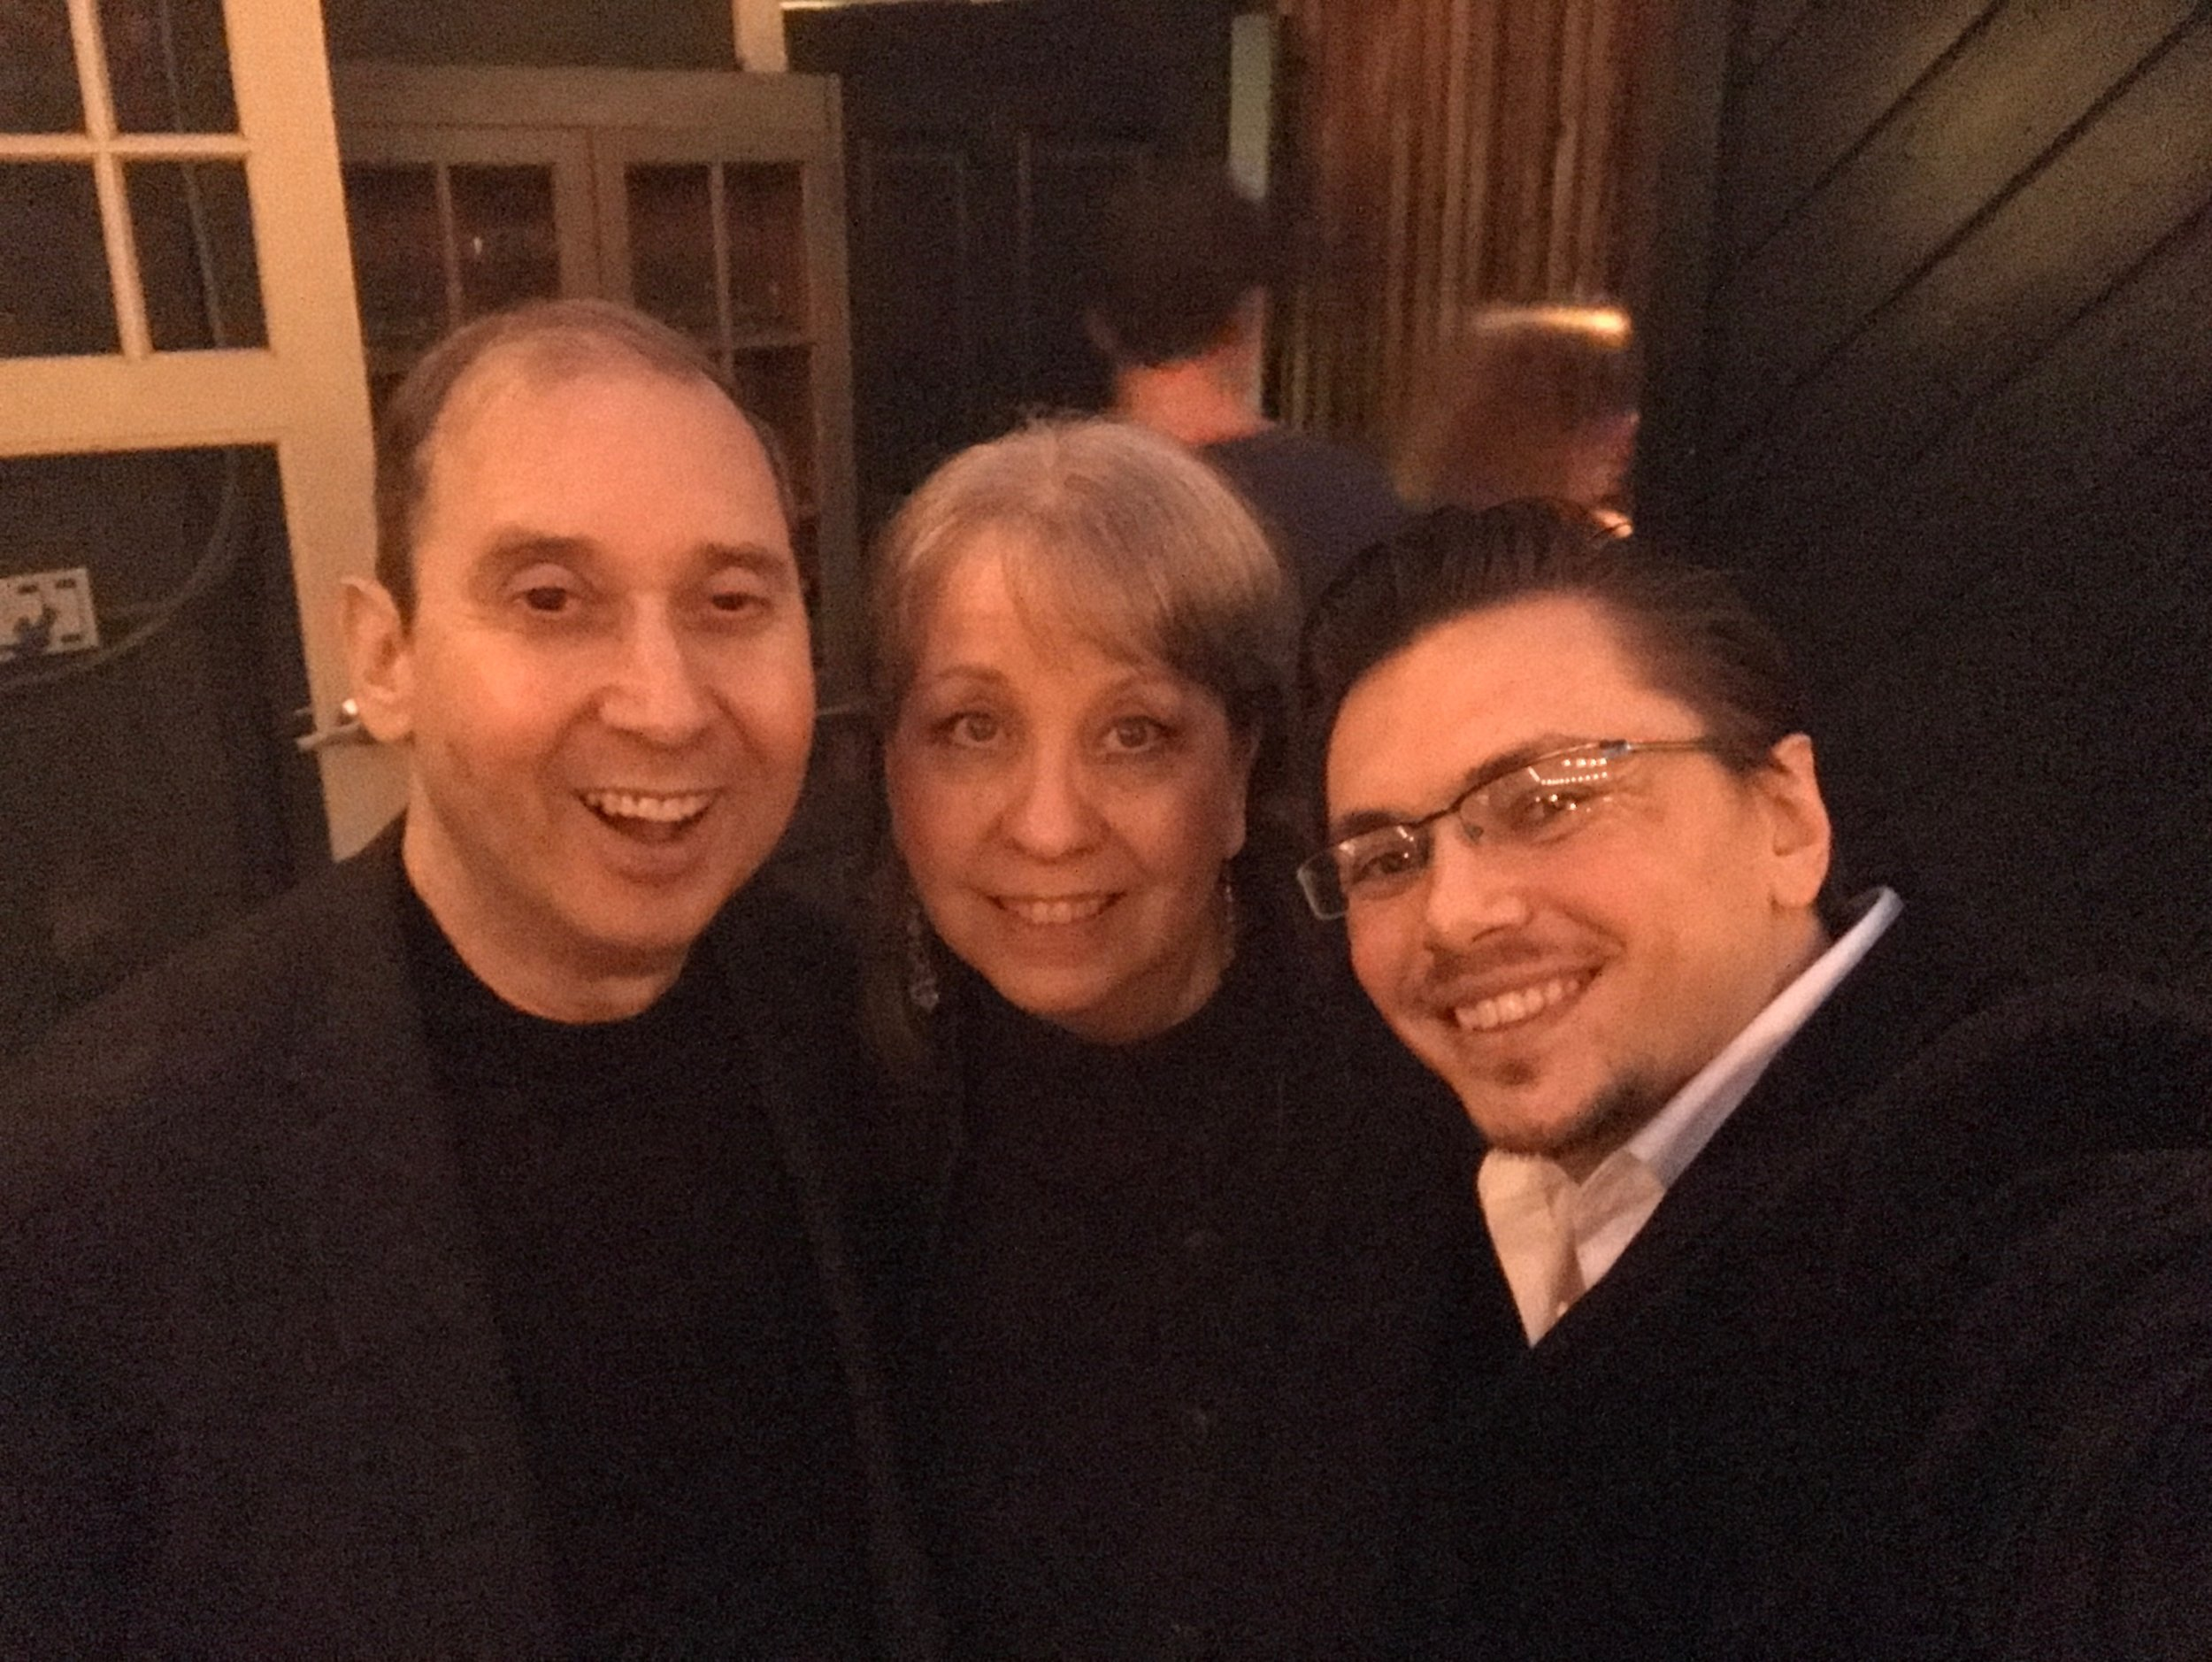 With Oscar-nominated and Emmy Award-winning lyricist Dennis Spiegel and former Executive Director of the SCL Laura Dunn. Dennis and I are currently working together on a song project!